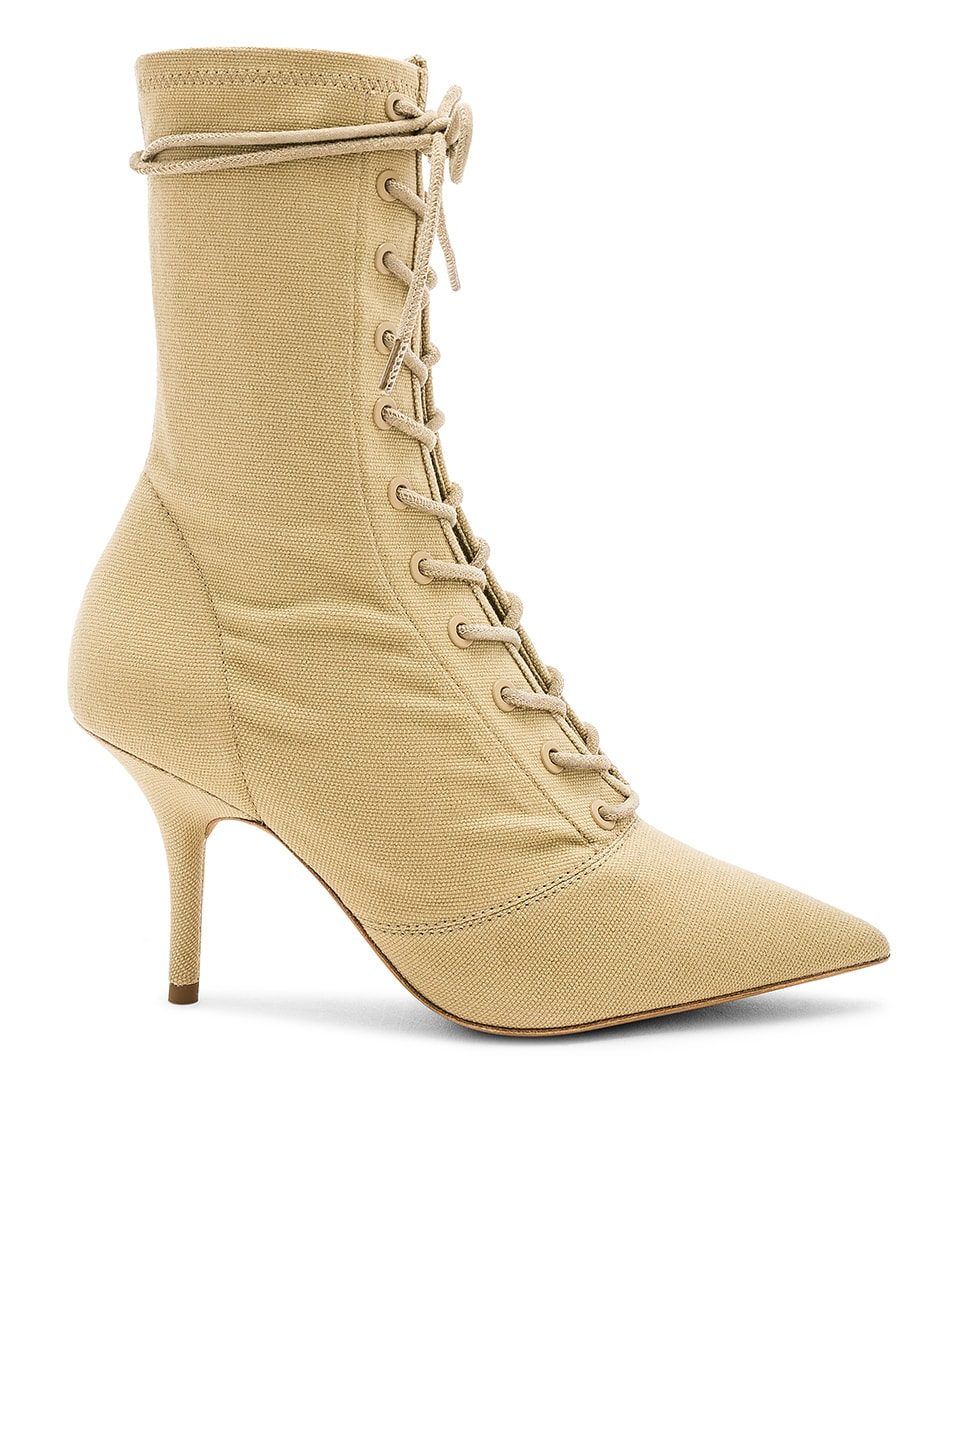 YEEZY Season 6 Lace Up Ankle Boot 90mm